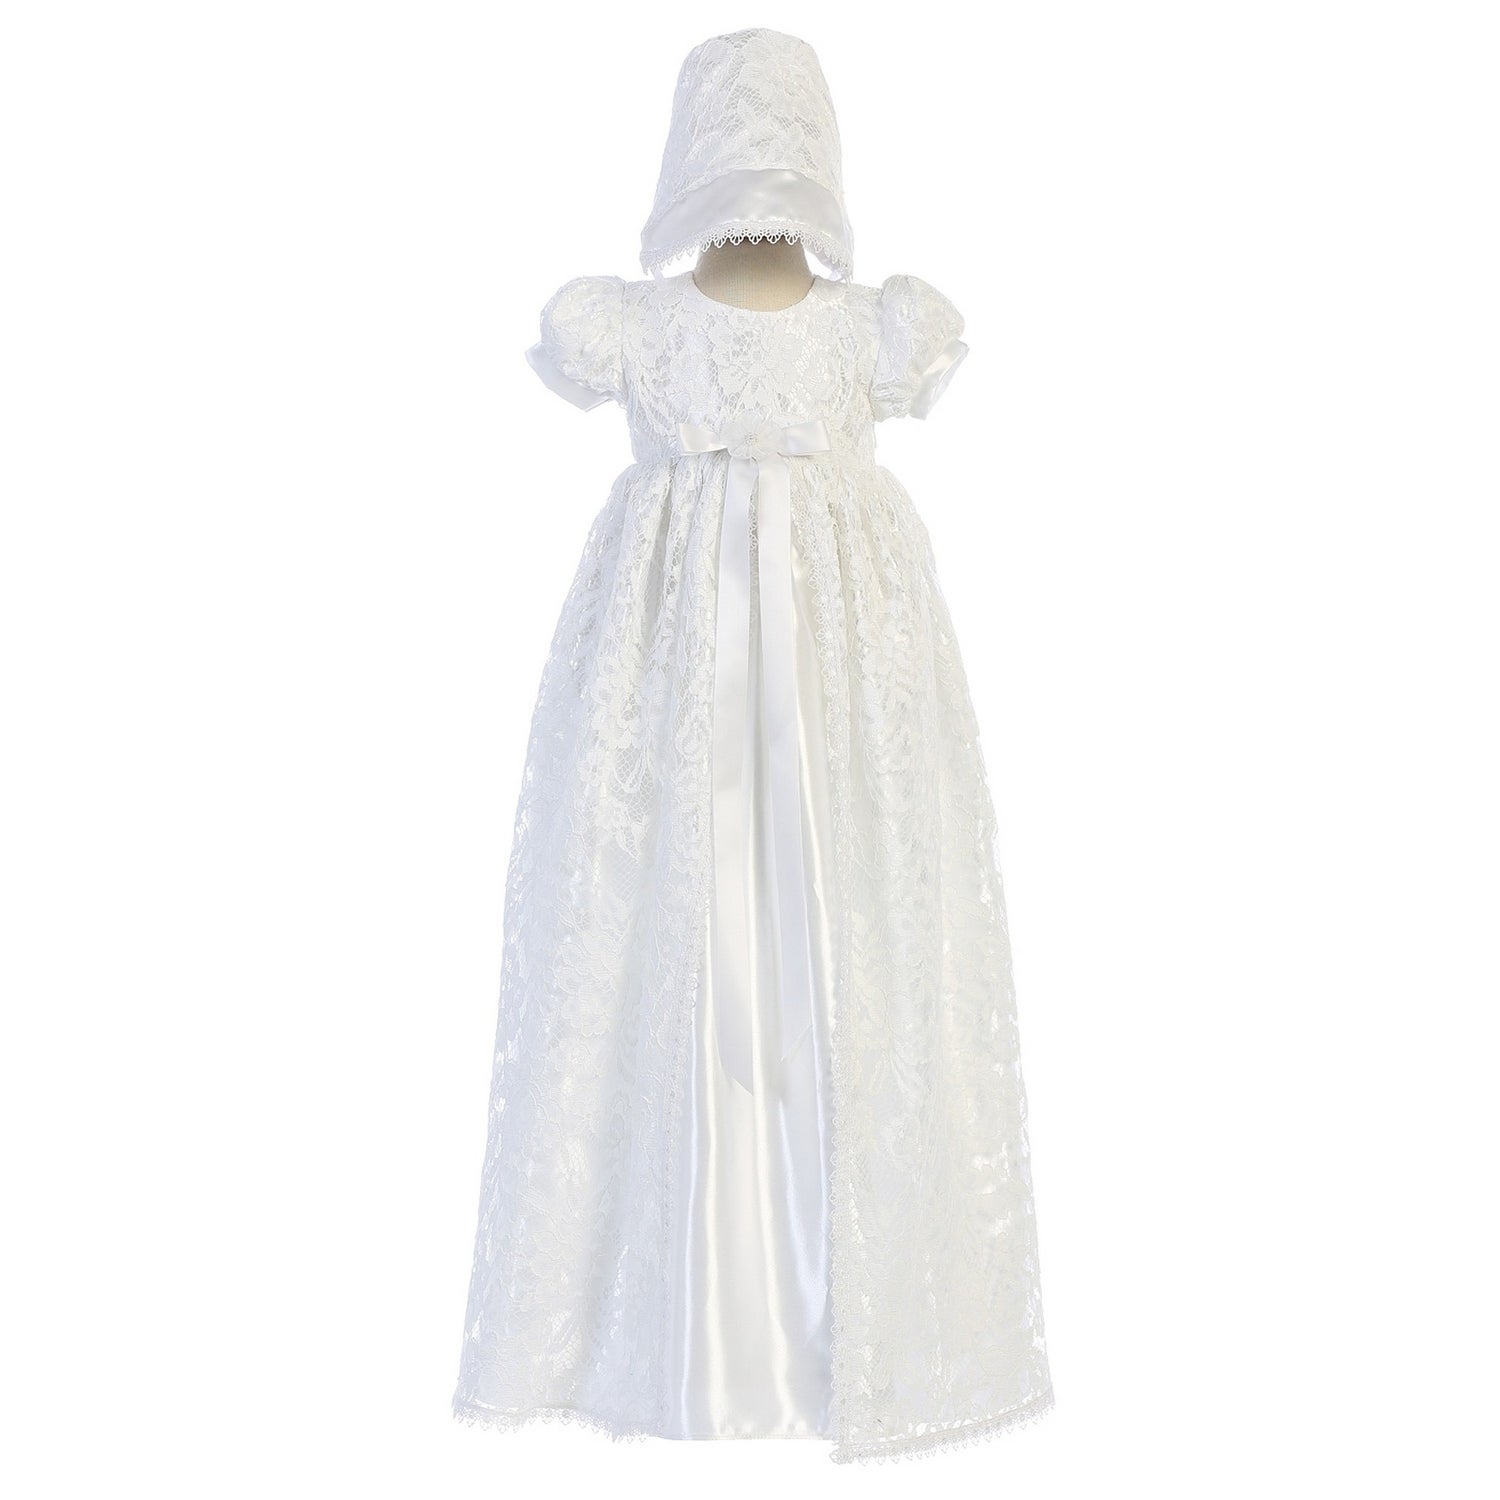 5bc7462cd0487 Buy Girls' Christening Gowns Online at Overstock | Our Best Girls ...